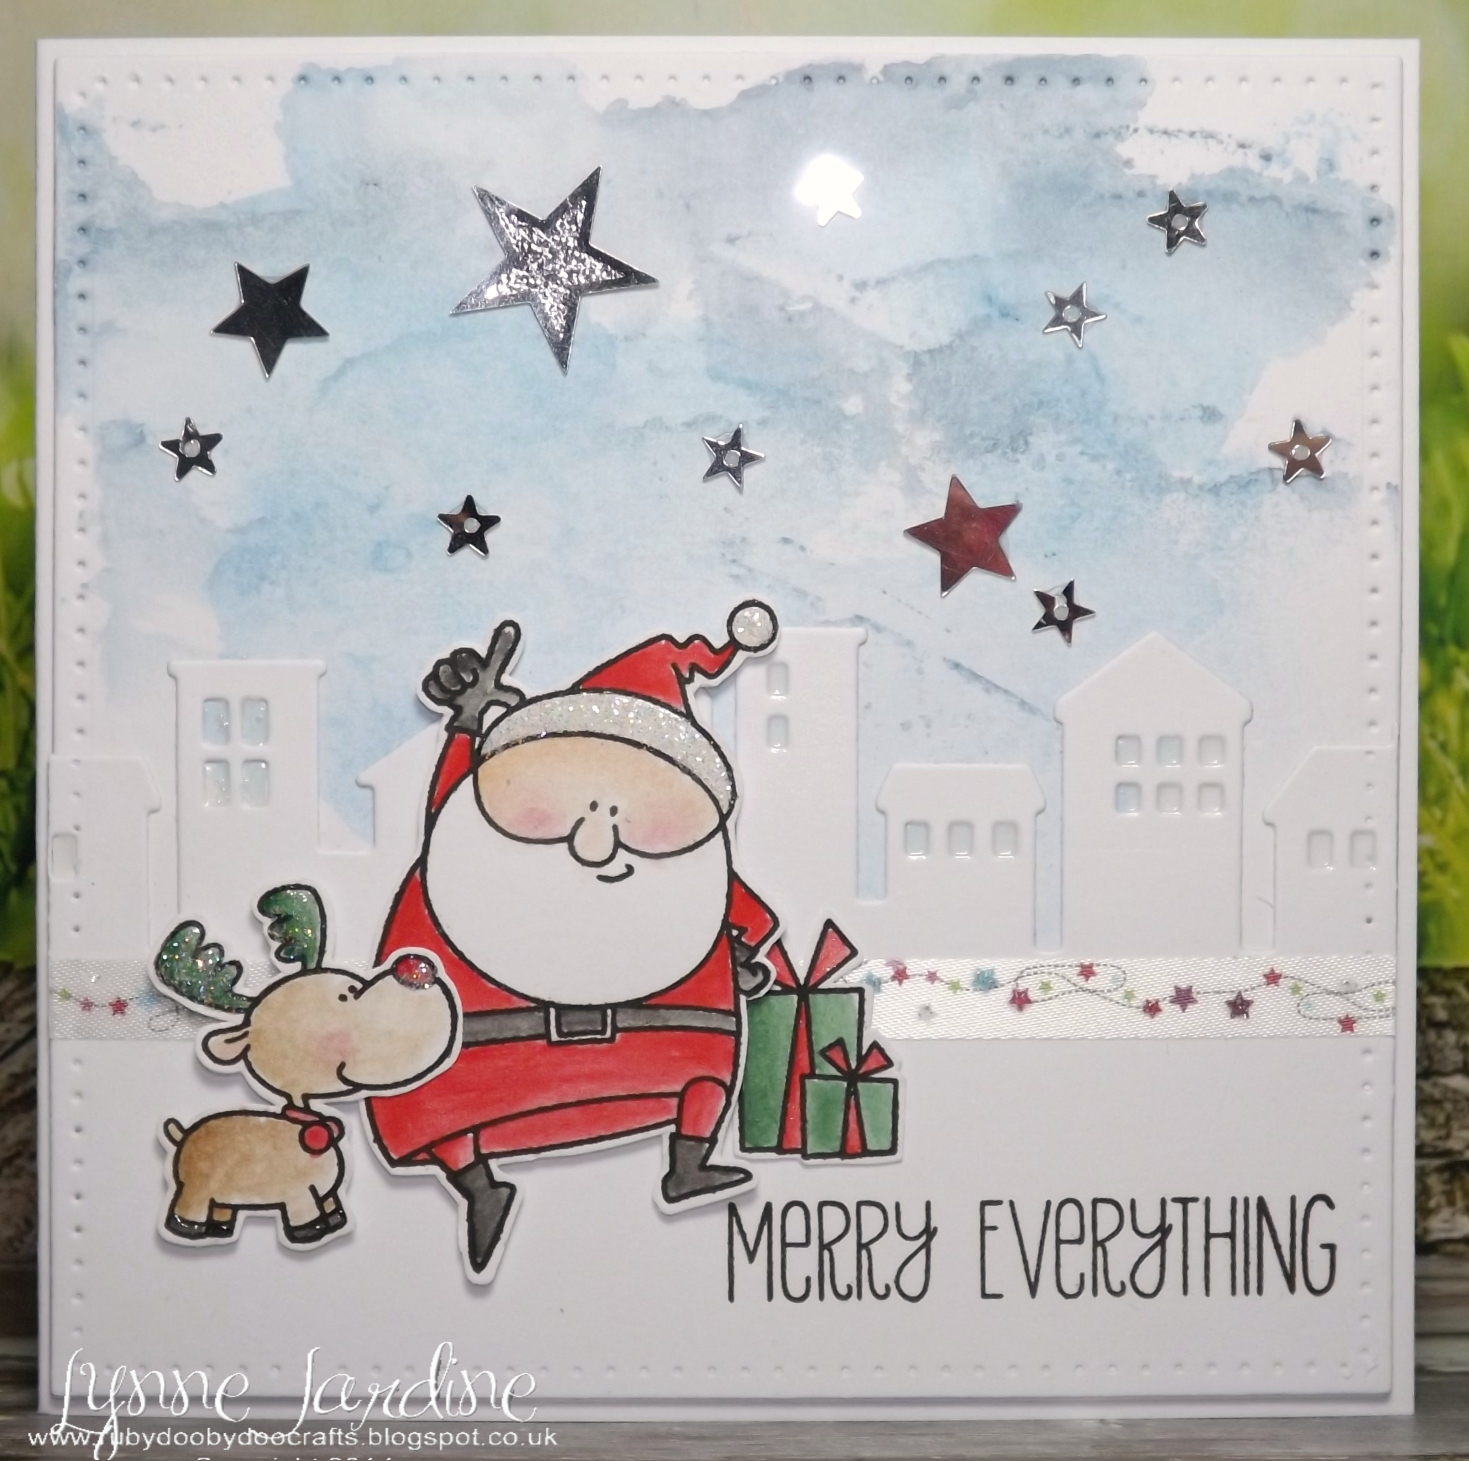 Ruby-Dooby-Doo Crafts: Getting into Christmas mode!